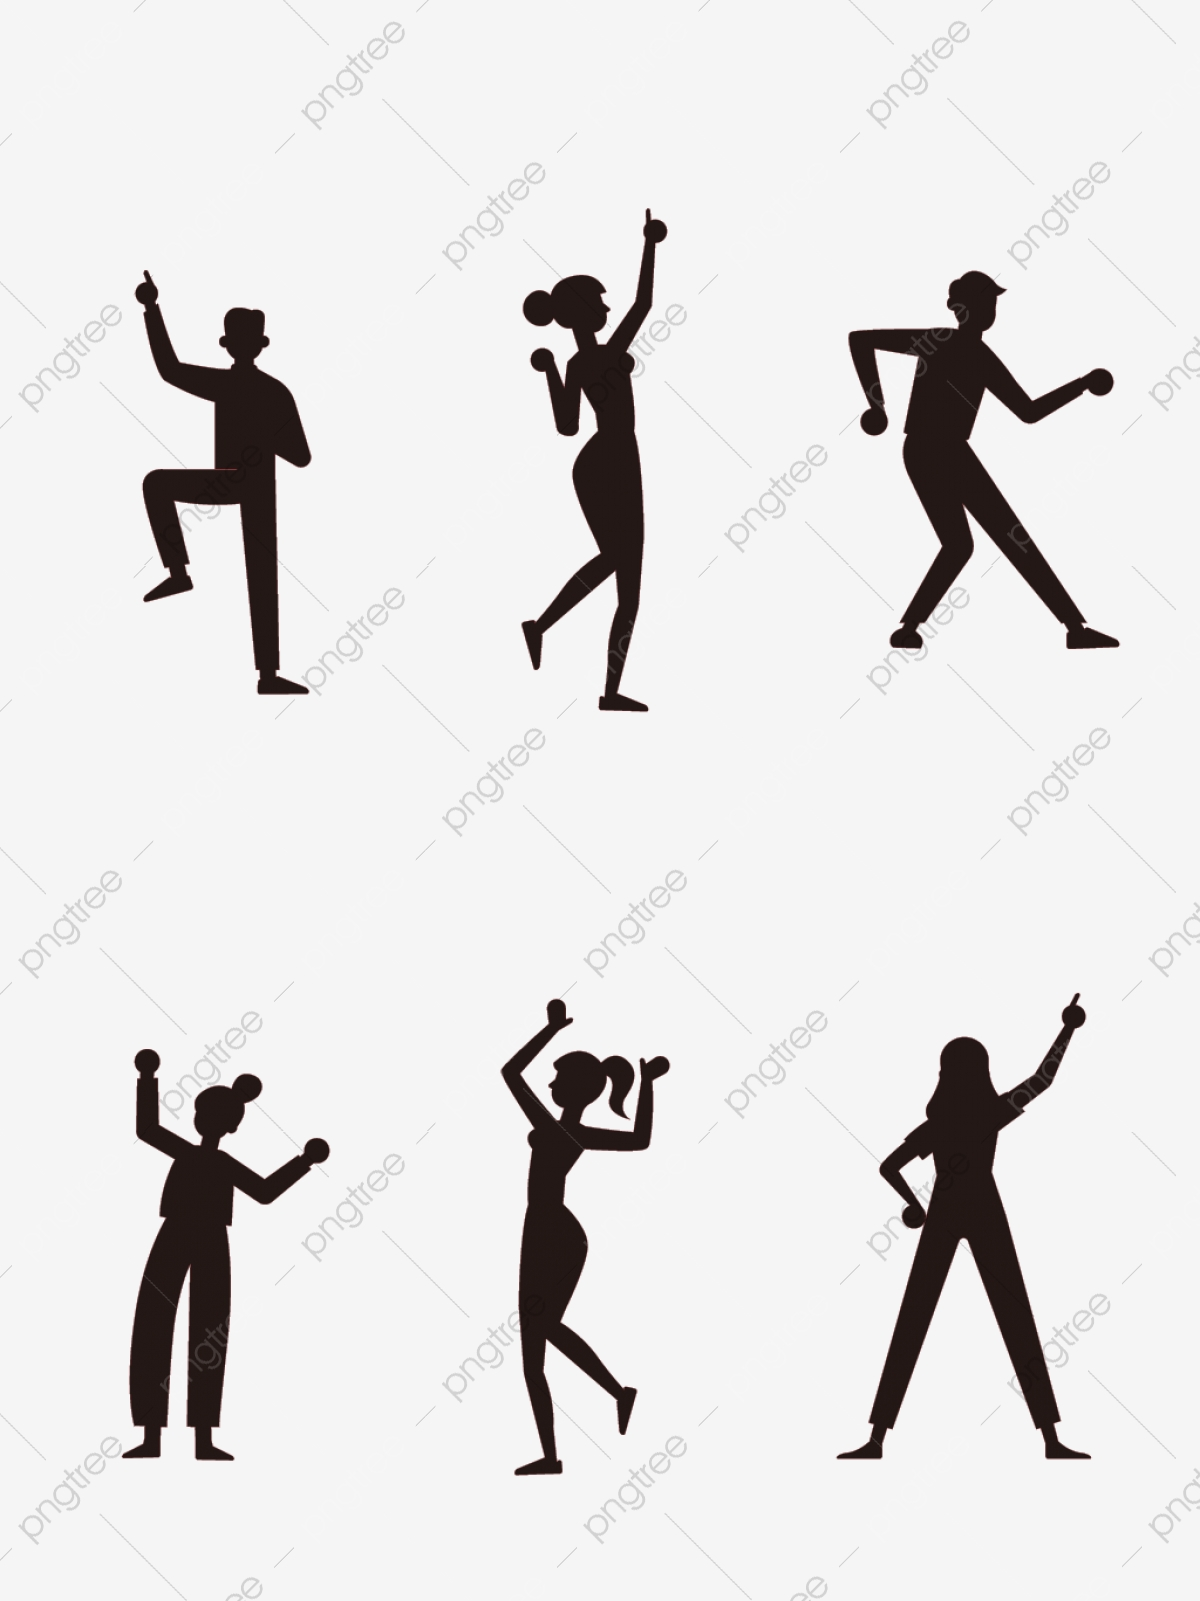 Character Dance Silhouette Cool Black Dancing Hand Drawn Illustration Elements Character Dance Silhouette Png And Vector With Transparent Background For Free Download